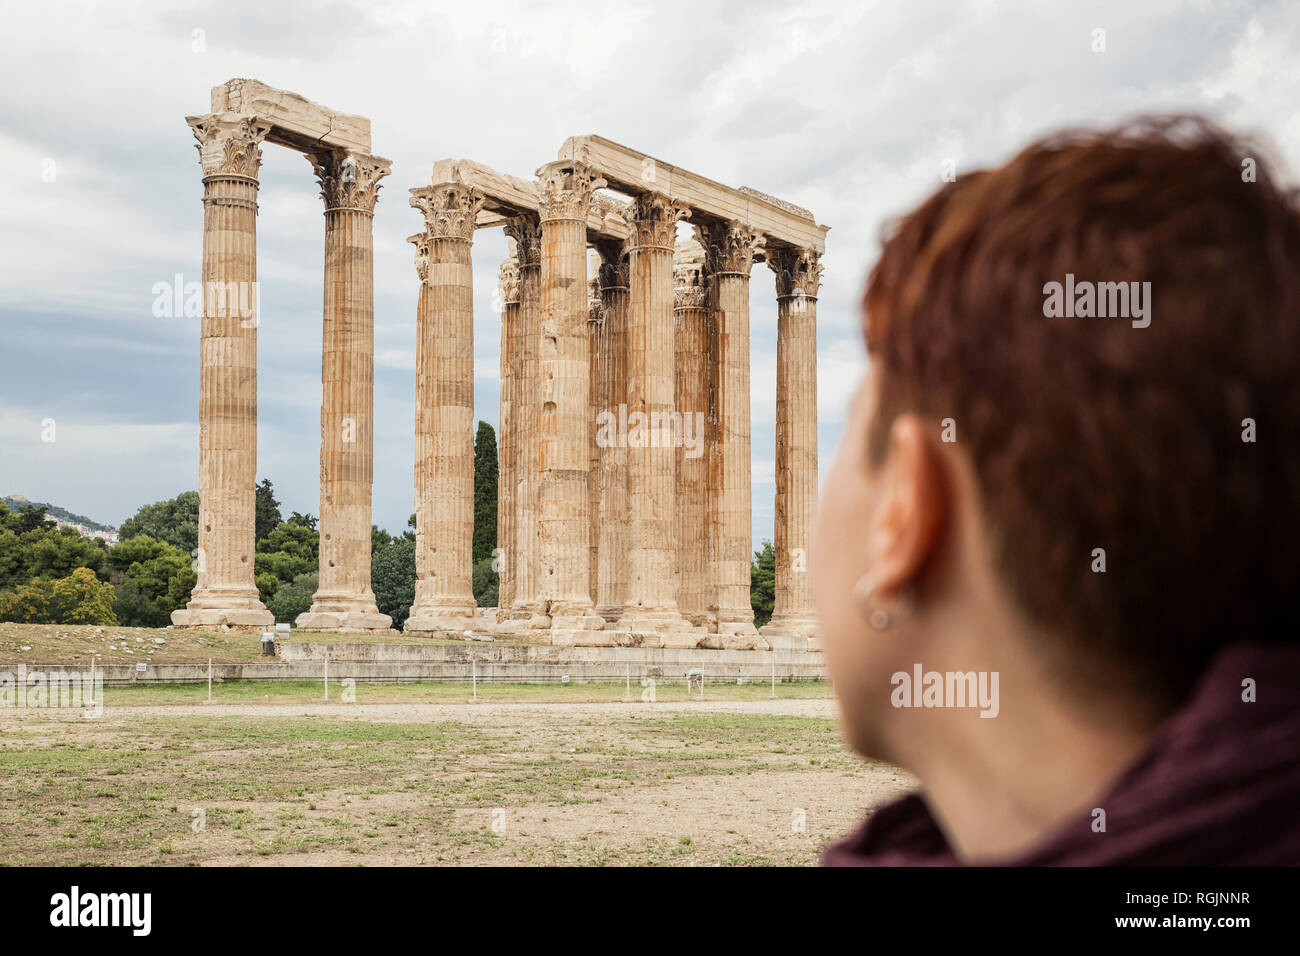 Greece, Athens, Olympeion, Woman looking at Temple of Zeus - Stock Image